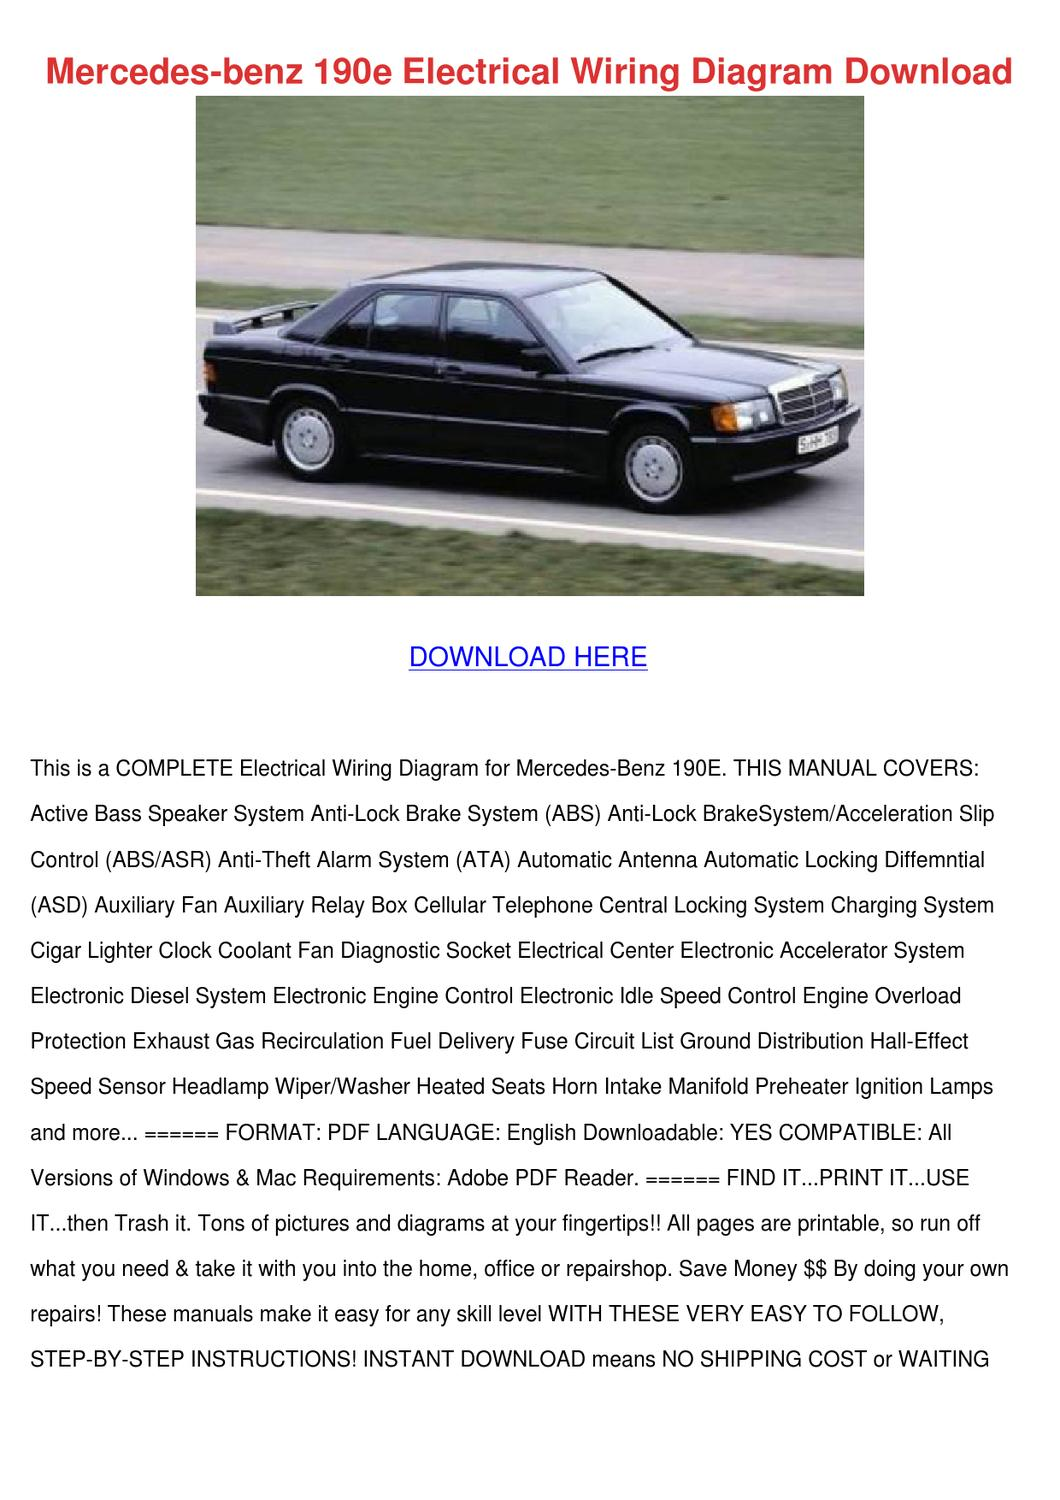 Mercedes Benz 190e Electrical Wiring Diagram By Arleneadam Issuu Rover 200 Pdf